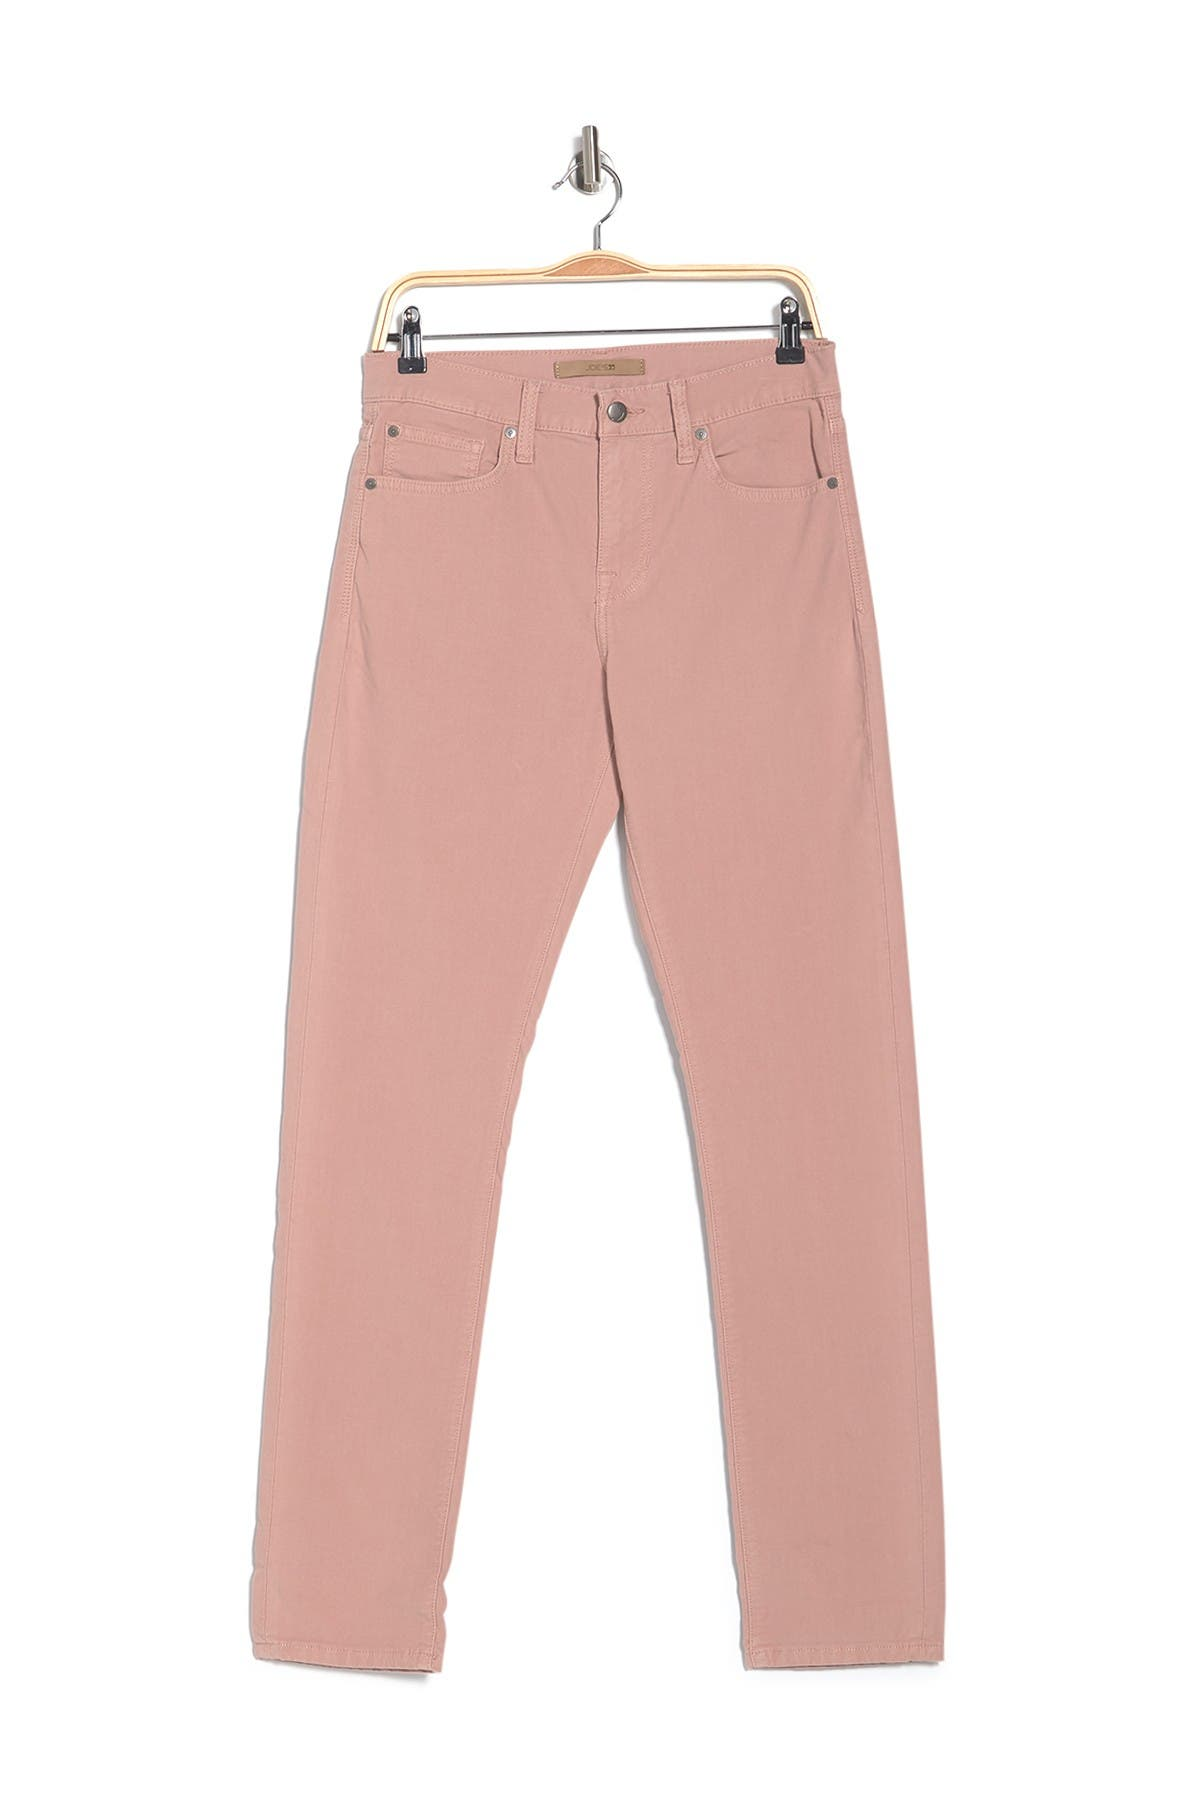 Image of Joe's Jeans The Asher Colors Chino Pants